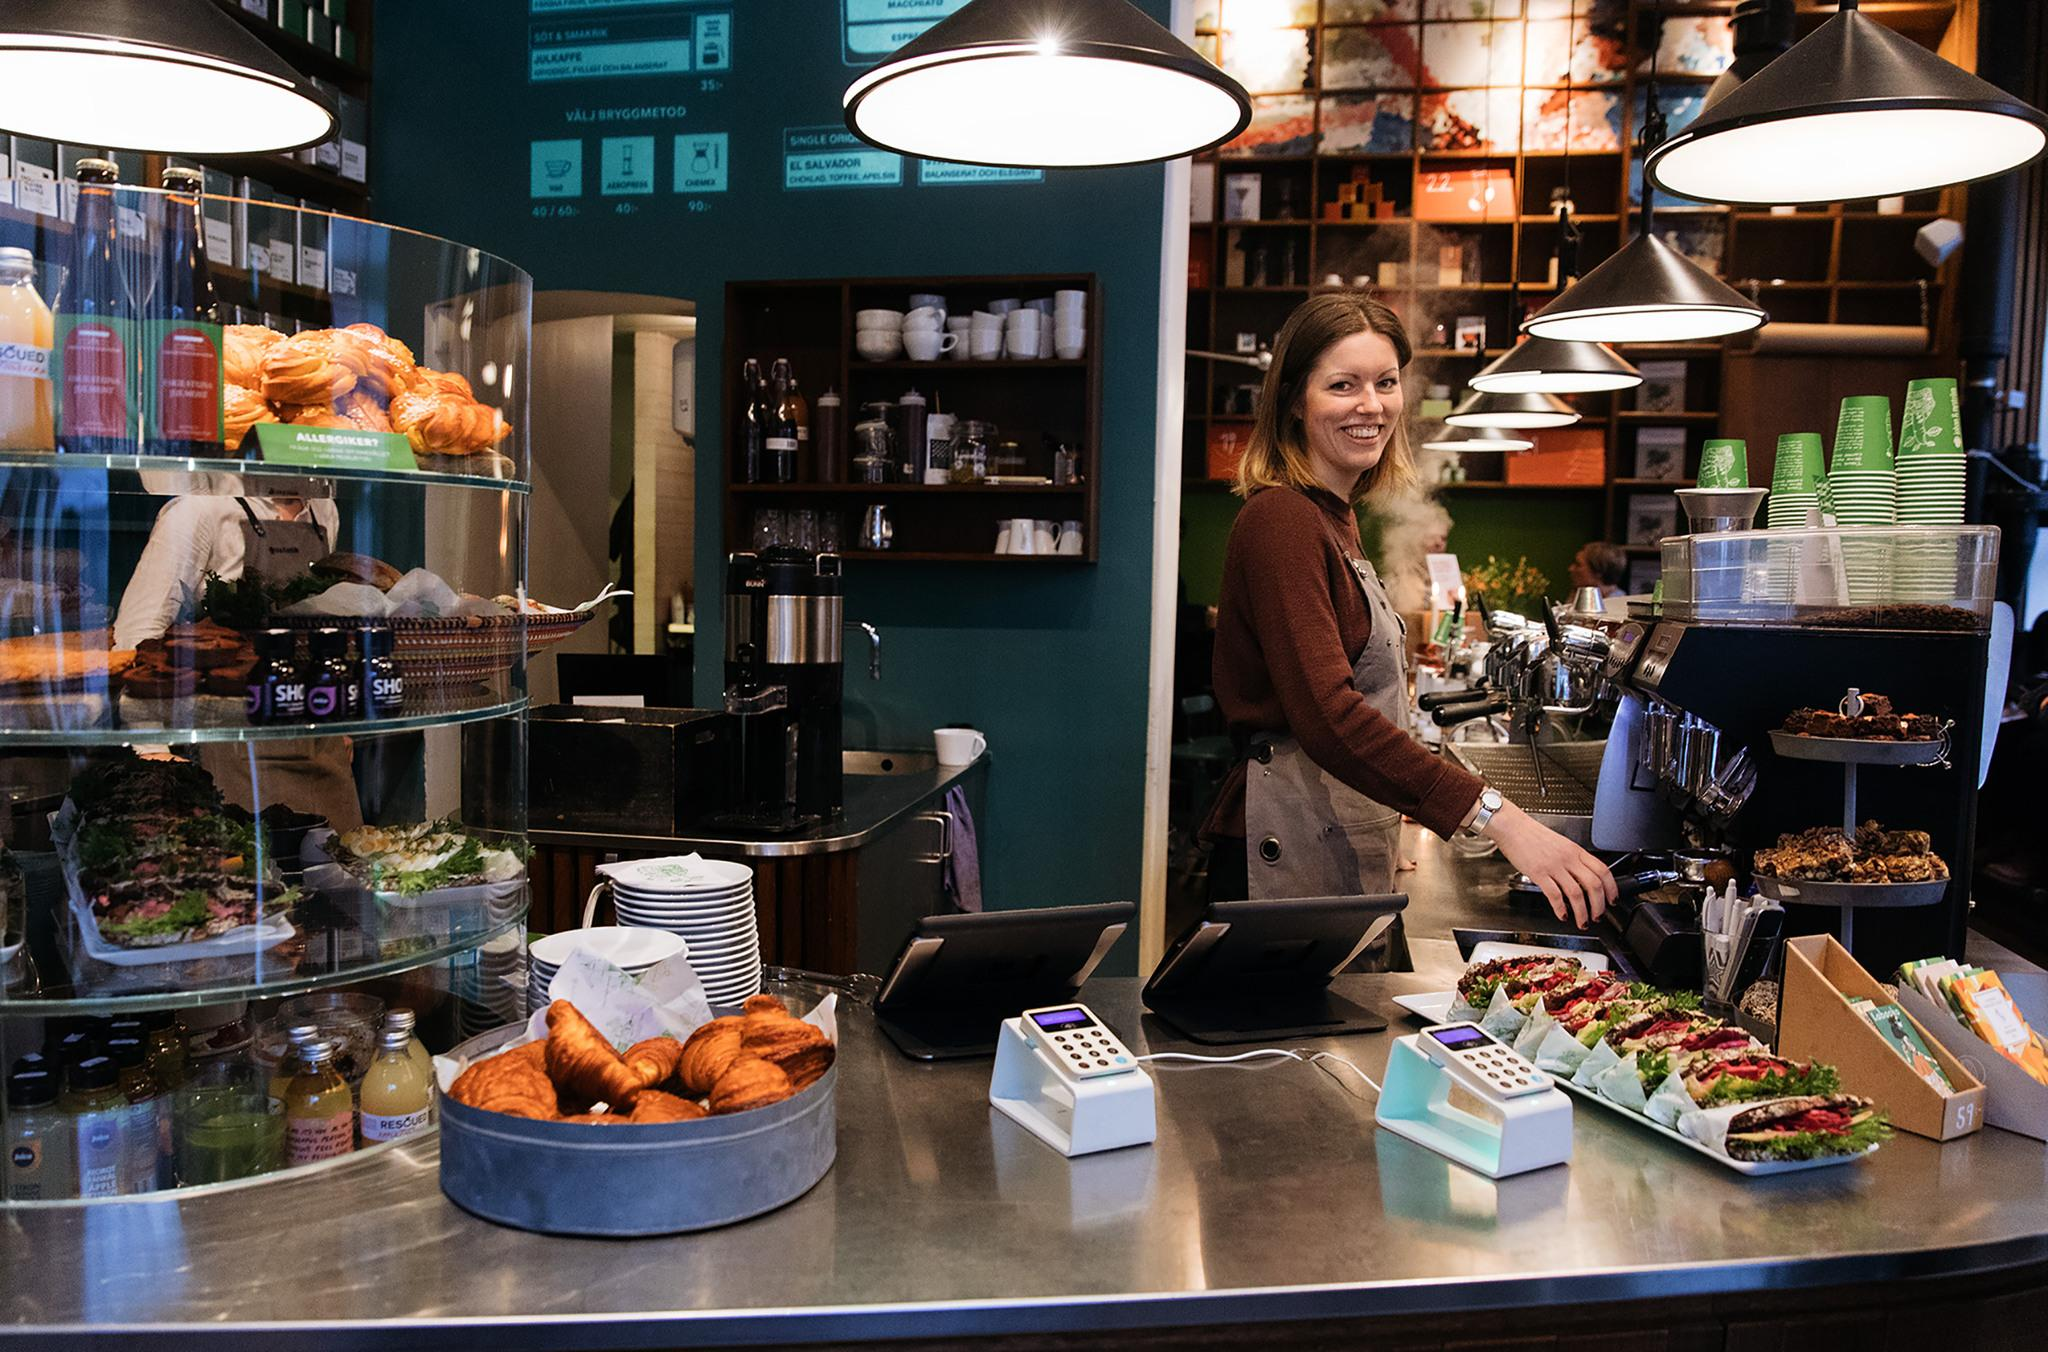 The counter of a café, with food and drink on the sides, machines for card payments on the counter and a woman looking into the camera behind the counter.